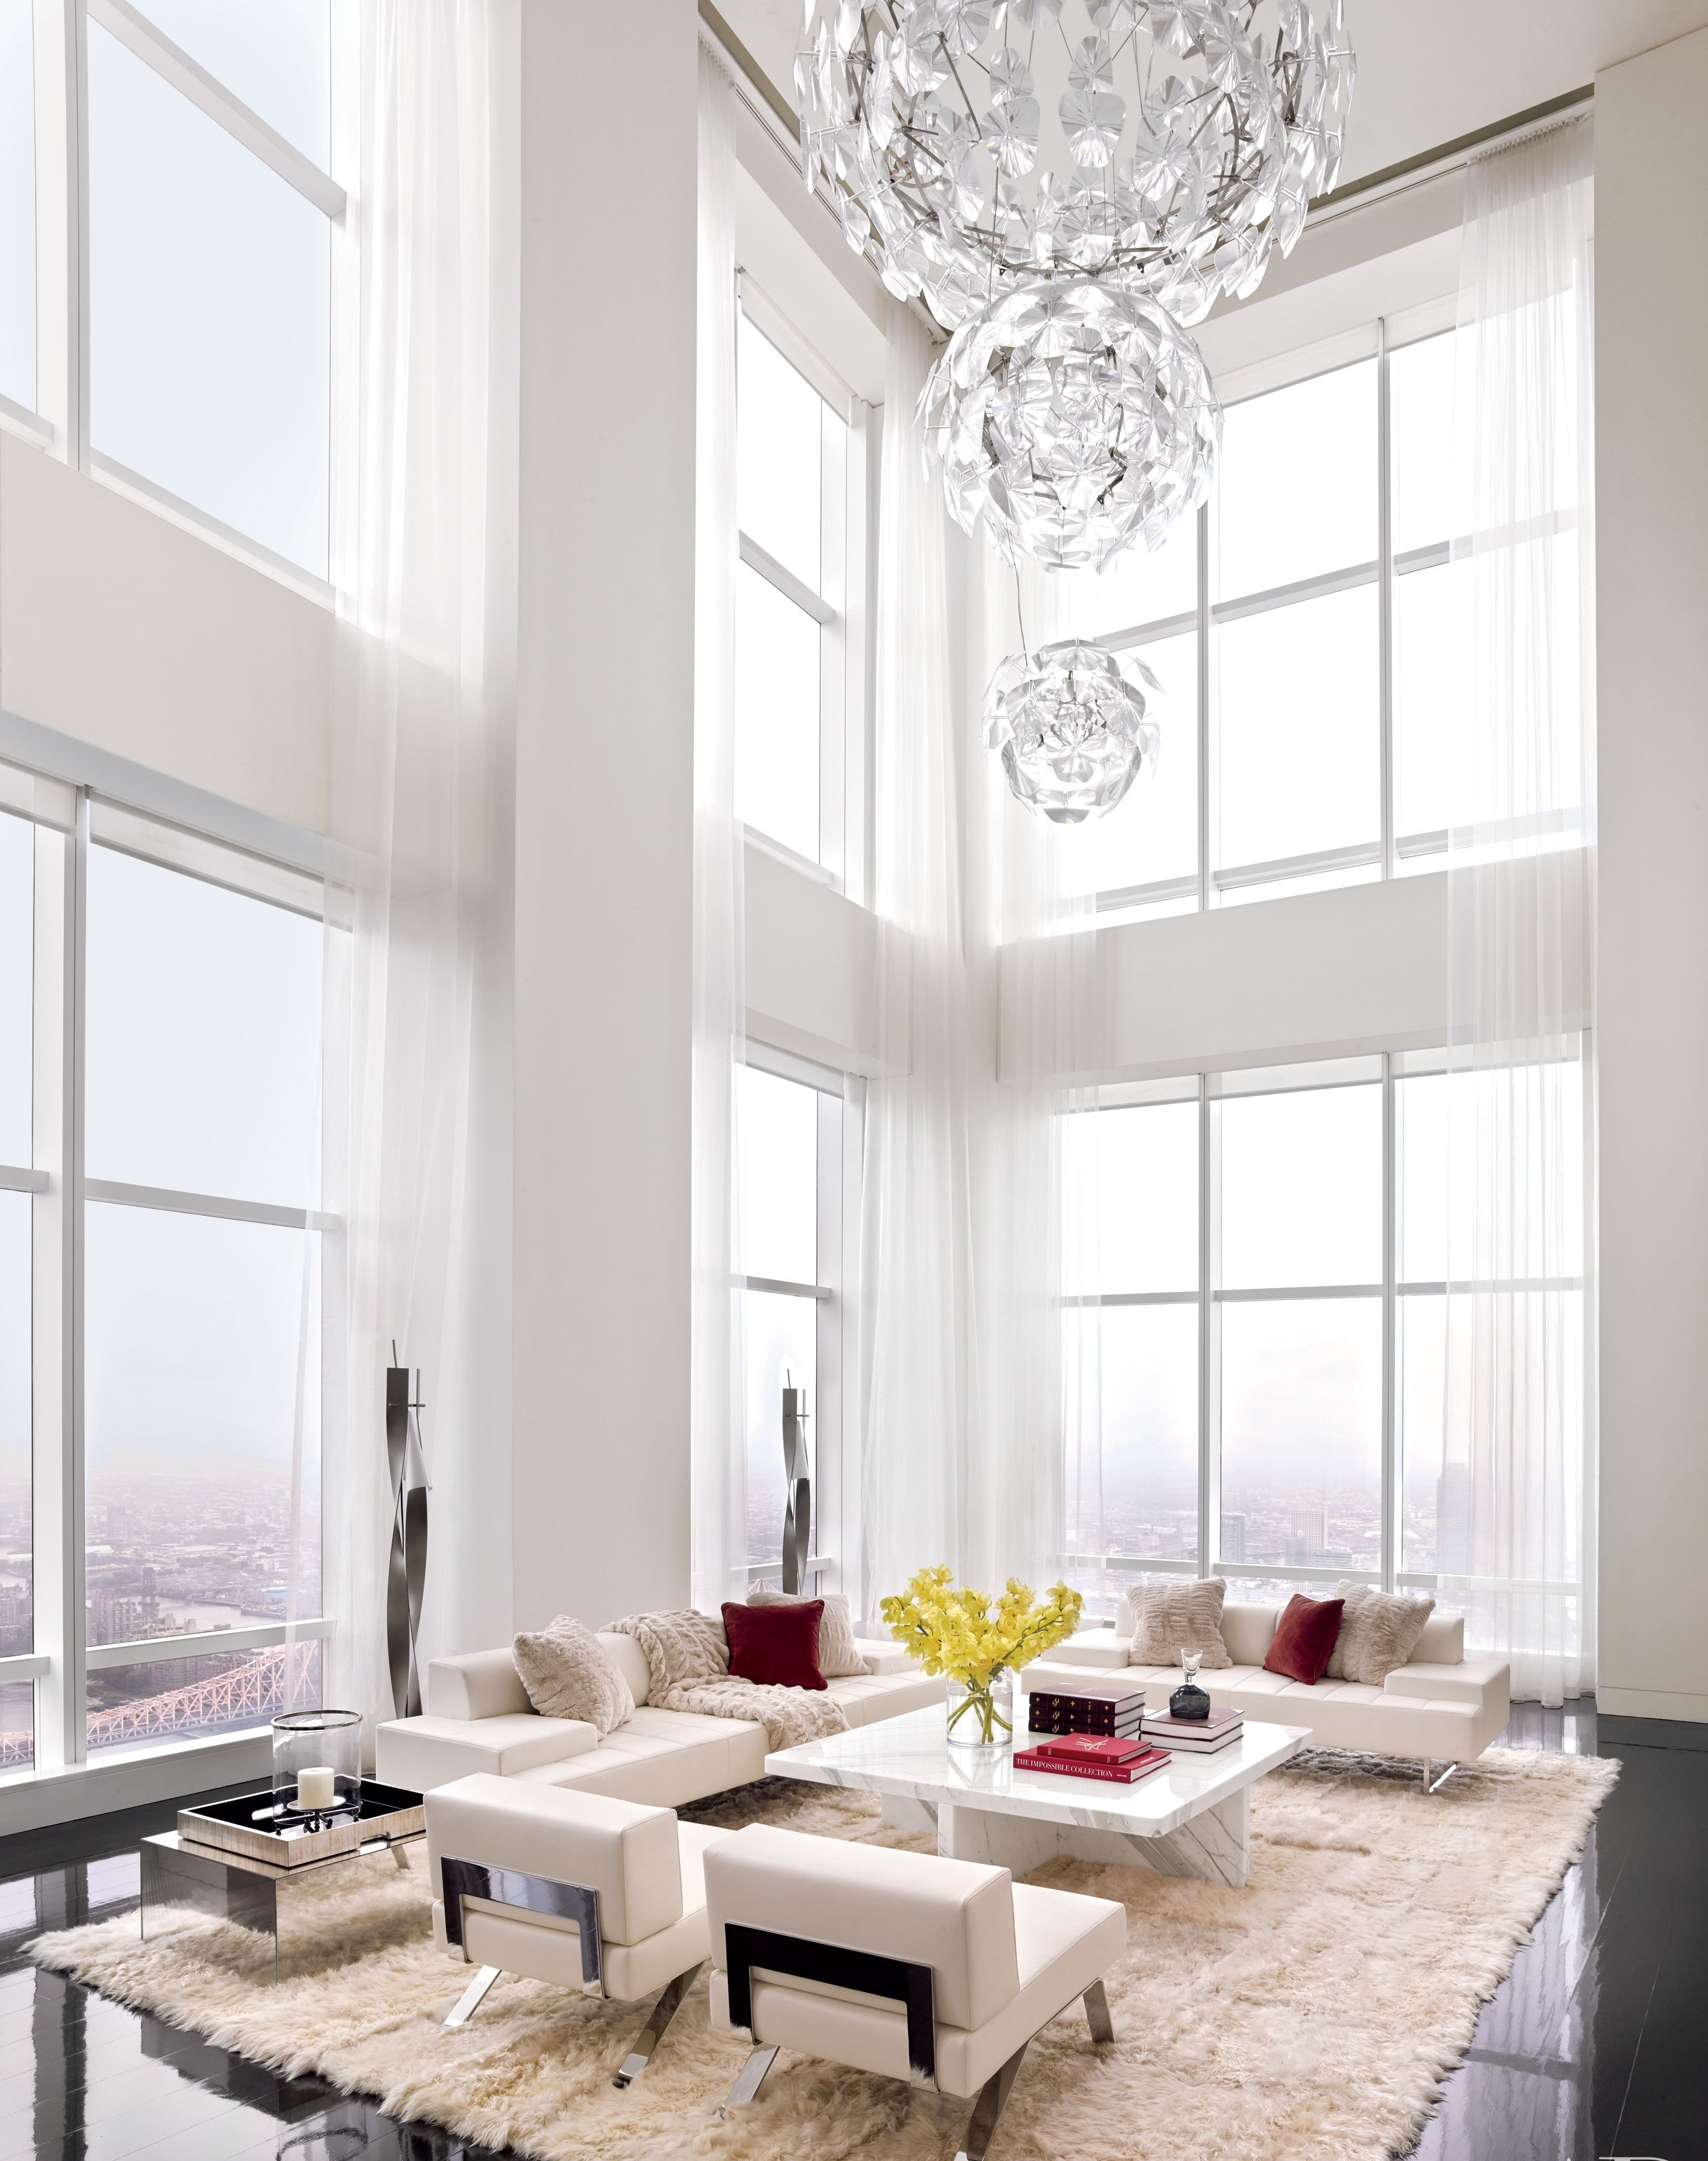 All white living room design ideas Modern white living room decor